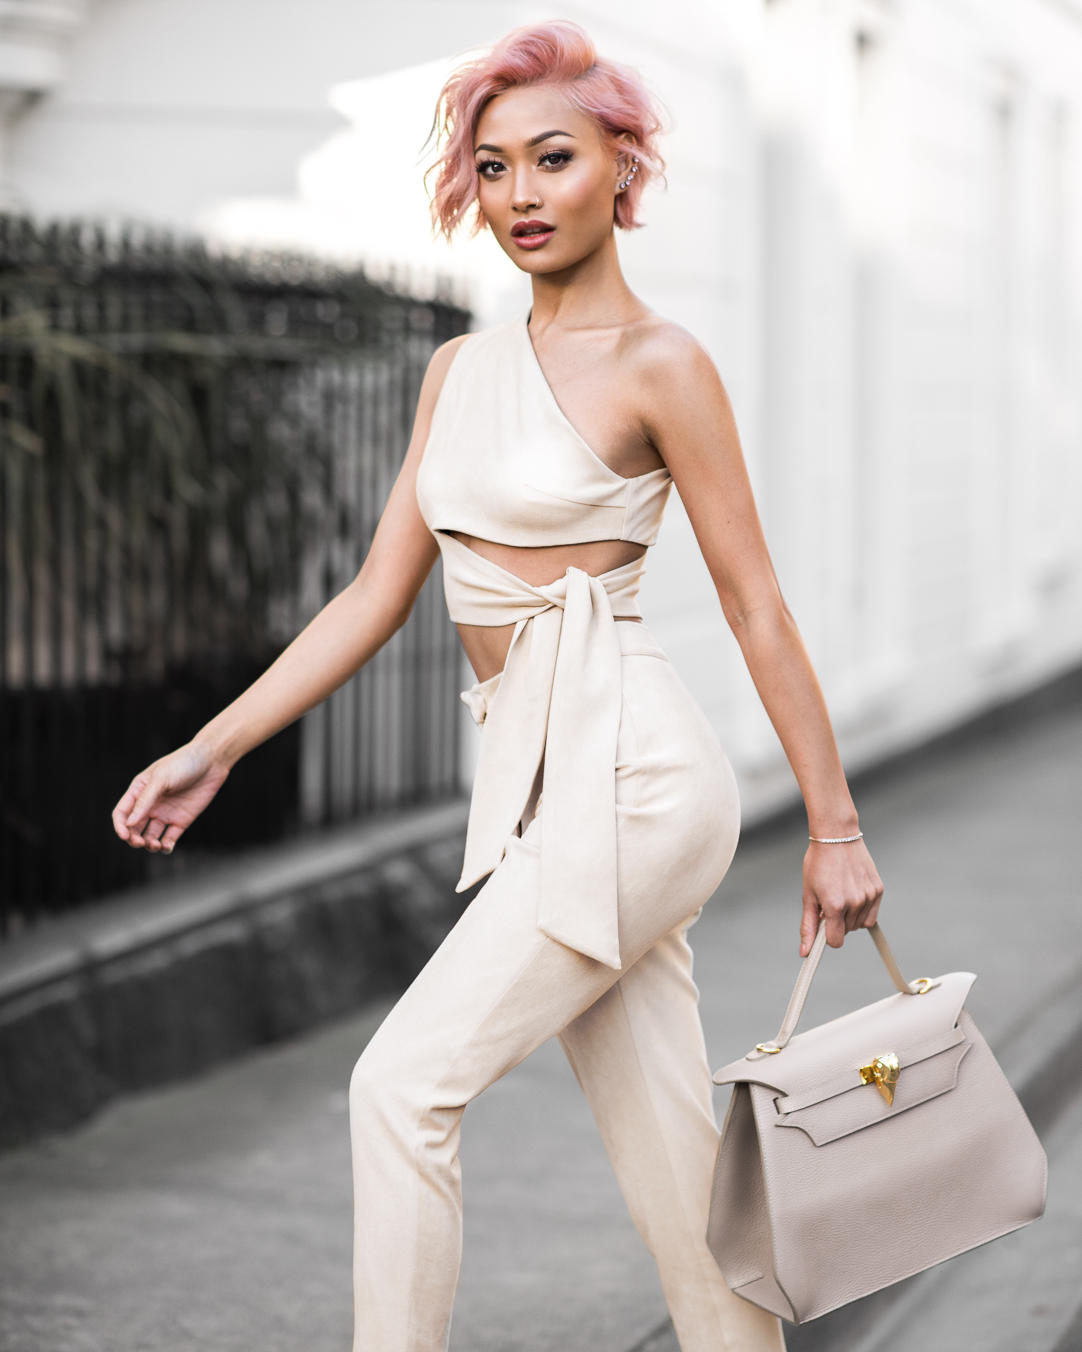 Micah-Gianneli-Windsor-Smith-Tyson-and-Peppa-Misha-Collection-Streetstyle-Fashion-Editorial-Campaign-Footwear-Fashionweek-Australian-Melbourne-Blogger-Hairstyle